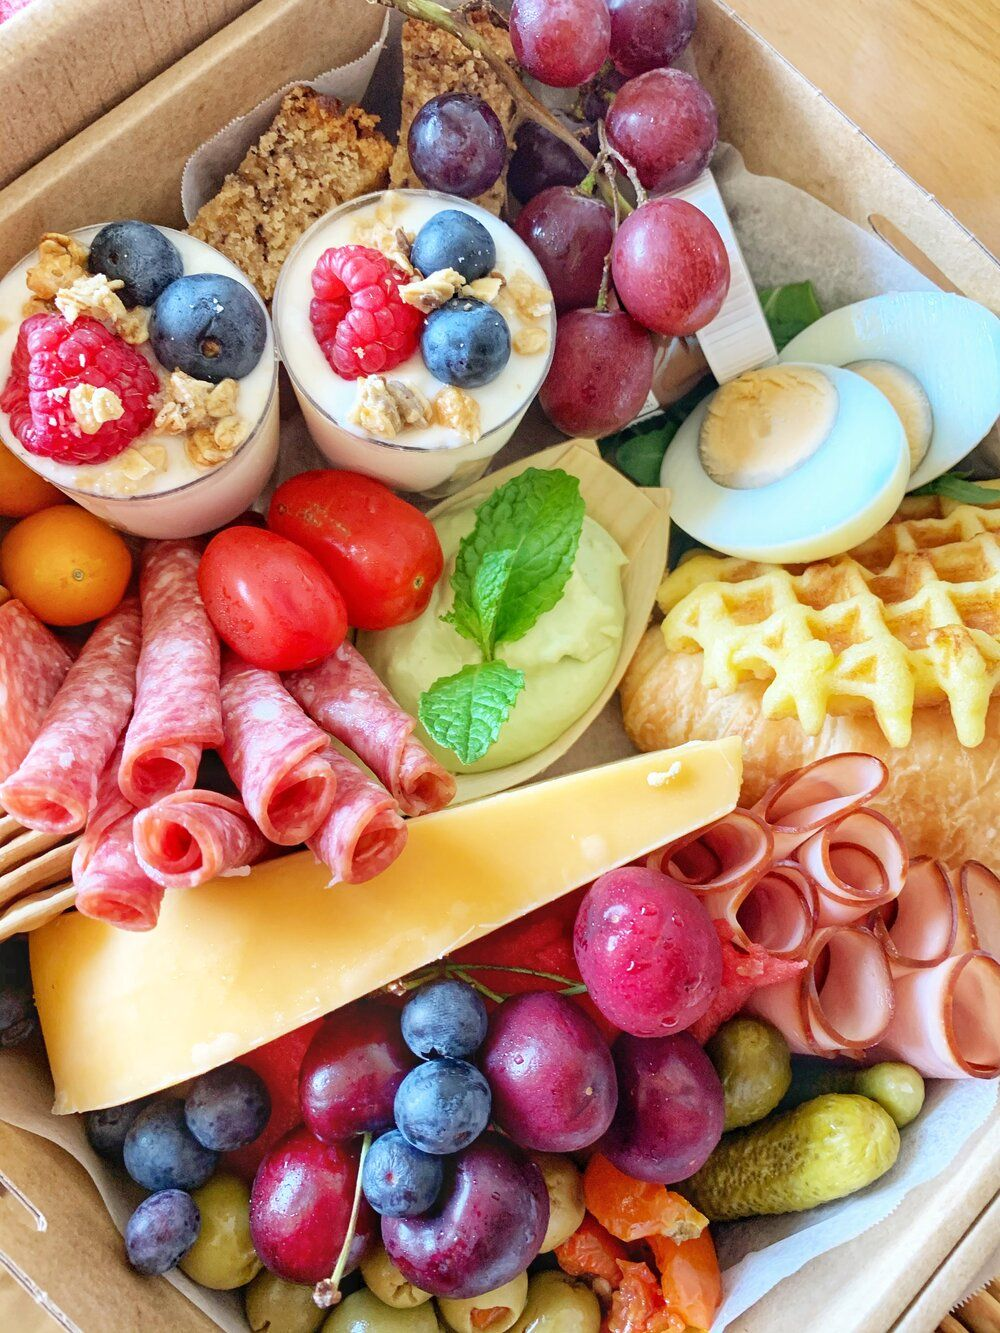 Brunch Grazing Box Yarrawonga Brunch Catering Catering Yarrawonga Wedding Catering Yarrawonga Graze Tables Pla In 2020 Brunch Catering Brunch Box Lunch Catering